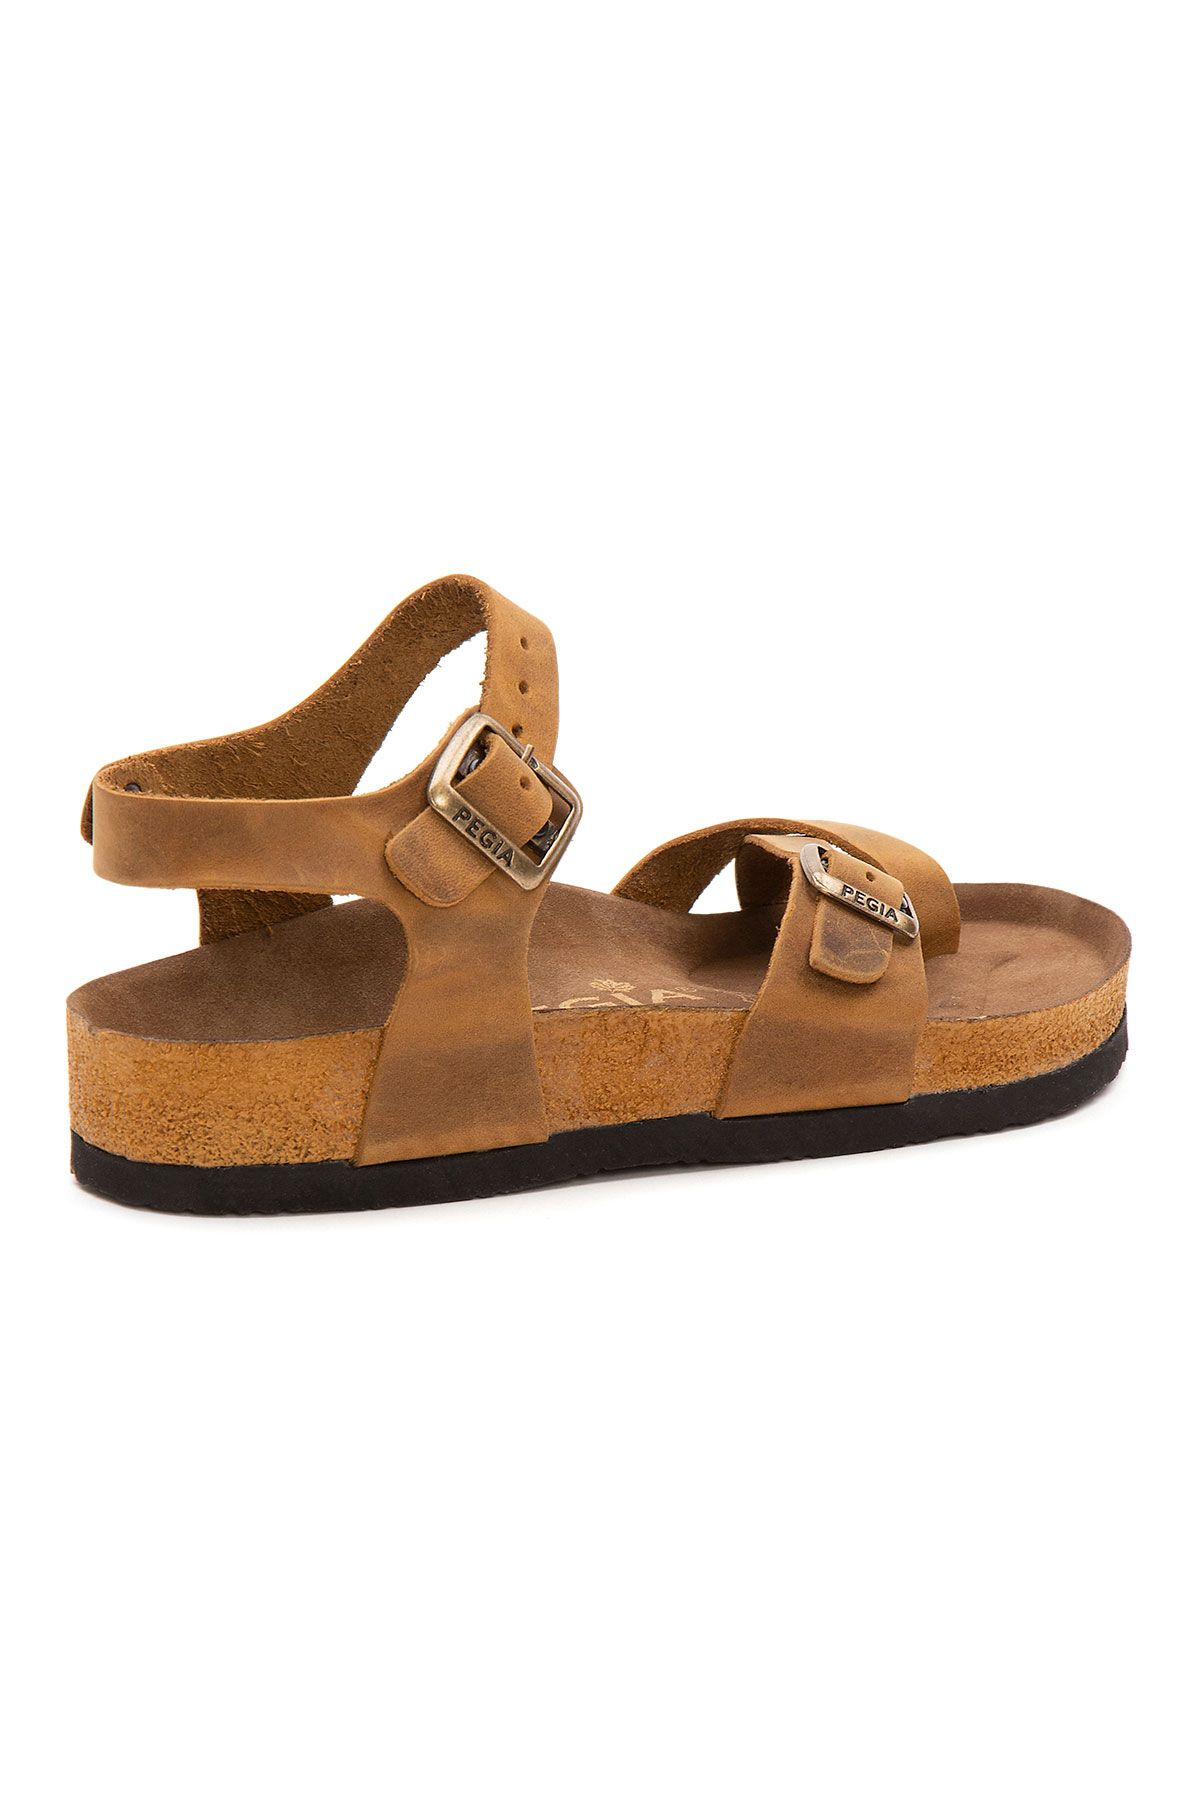 Pegia Women's Leather Sandals 215523 Ginger